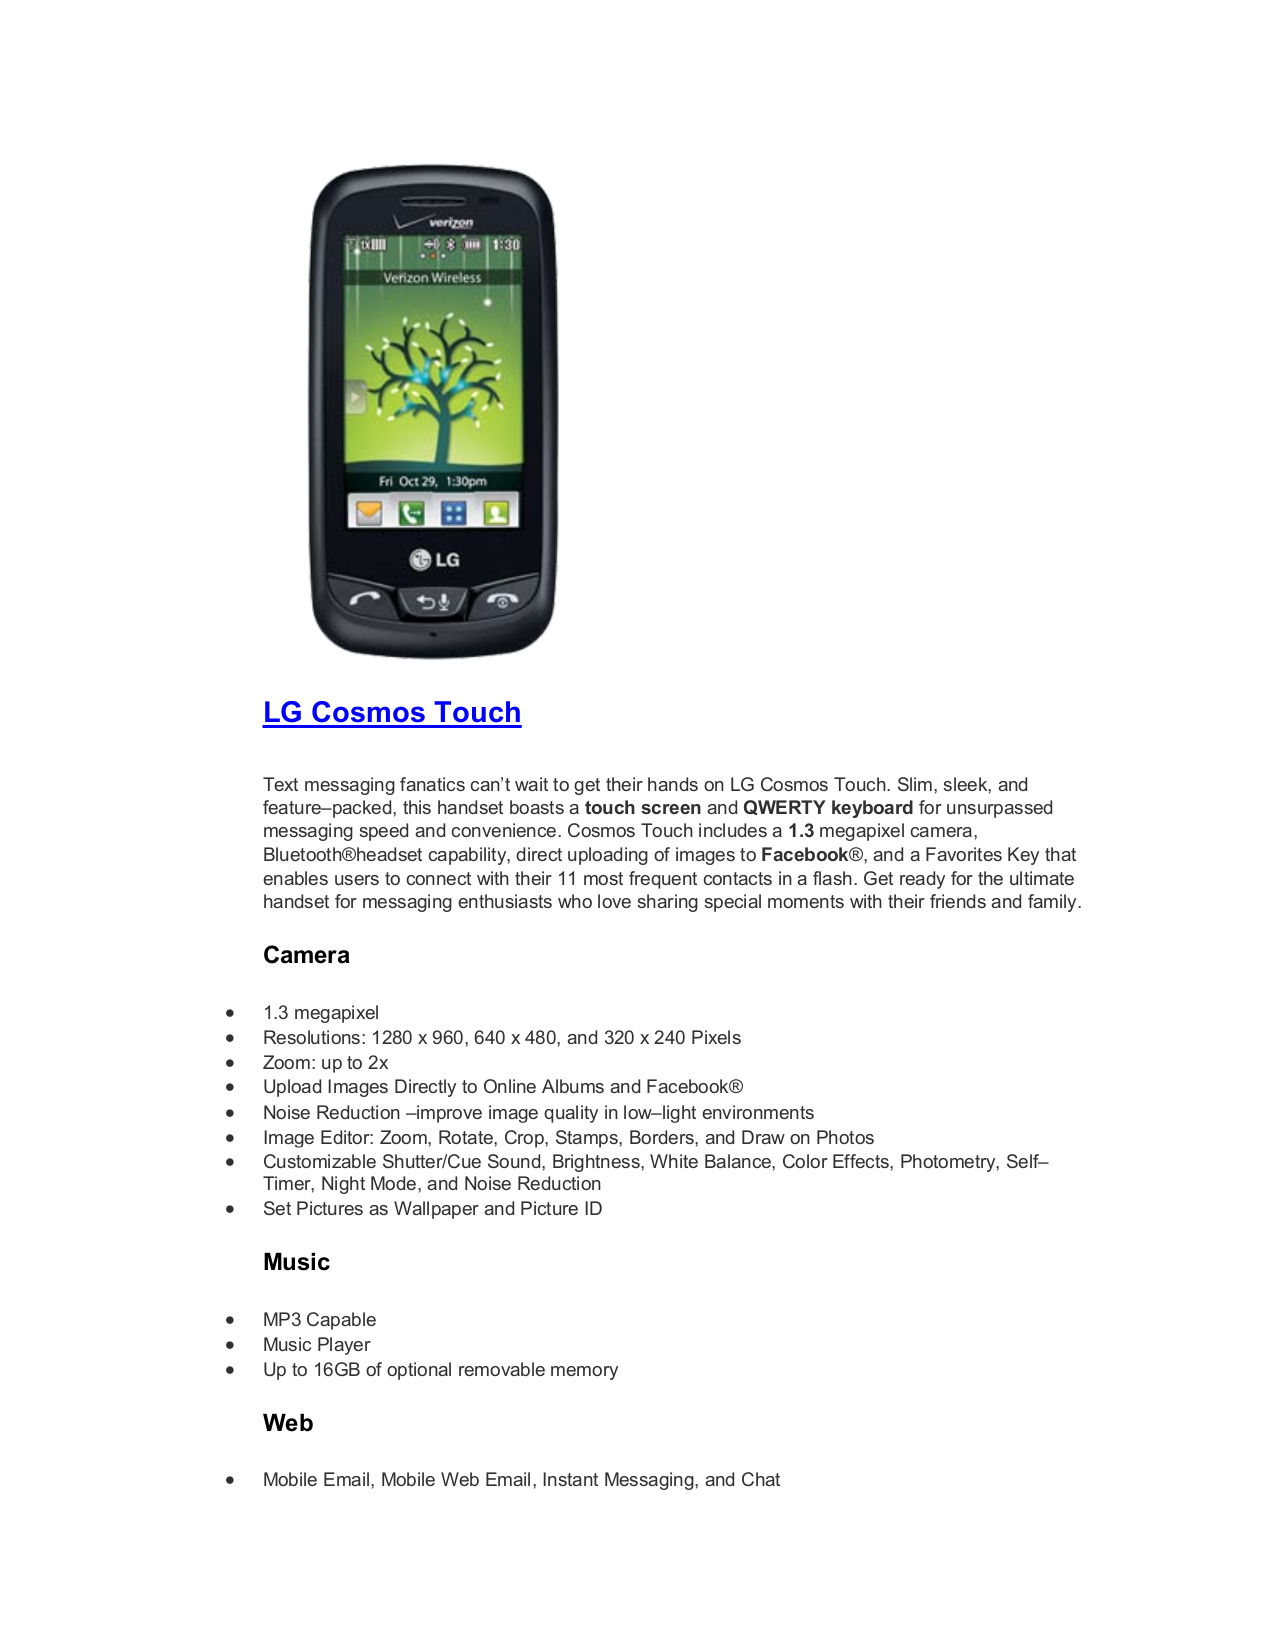 pdf for LG Cell Phone Cosmos Touch manual